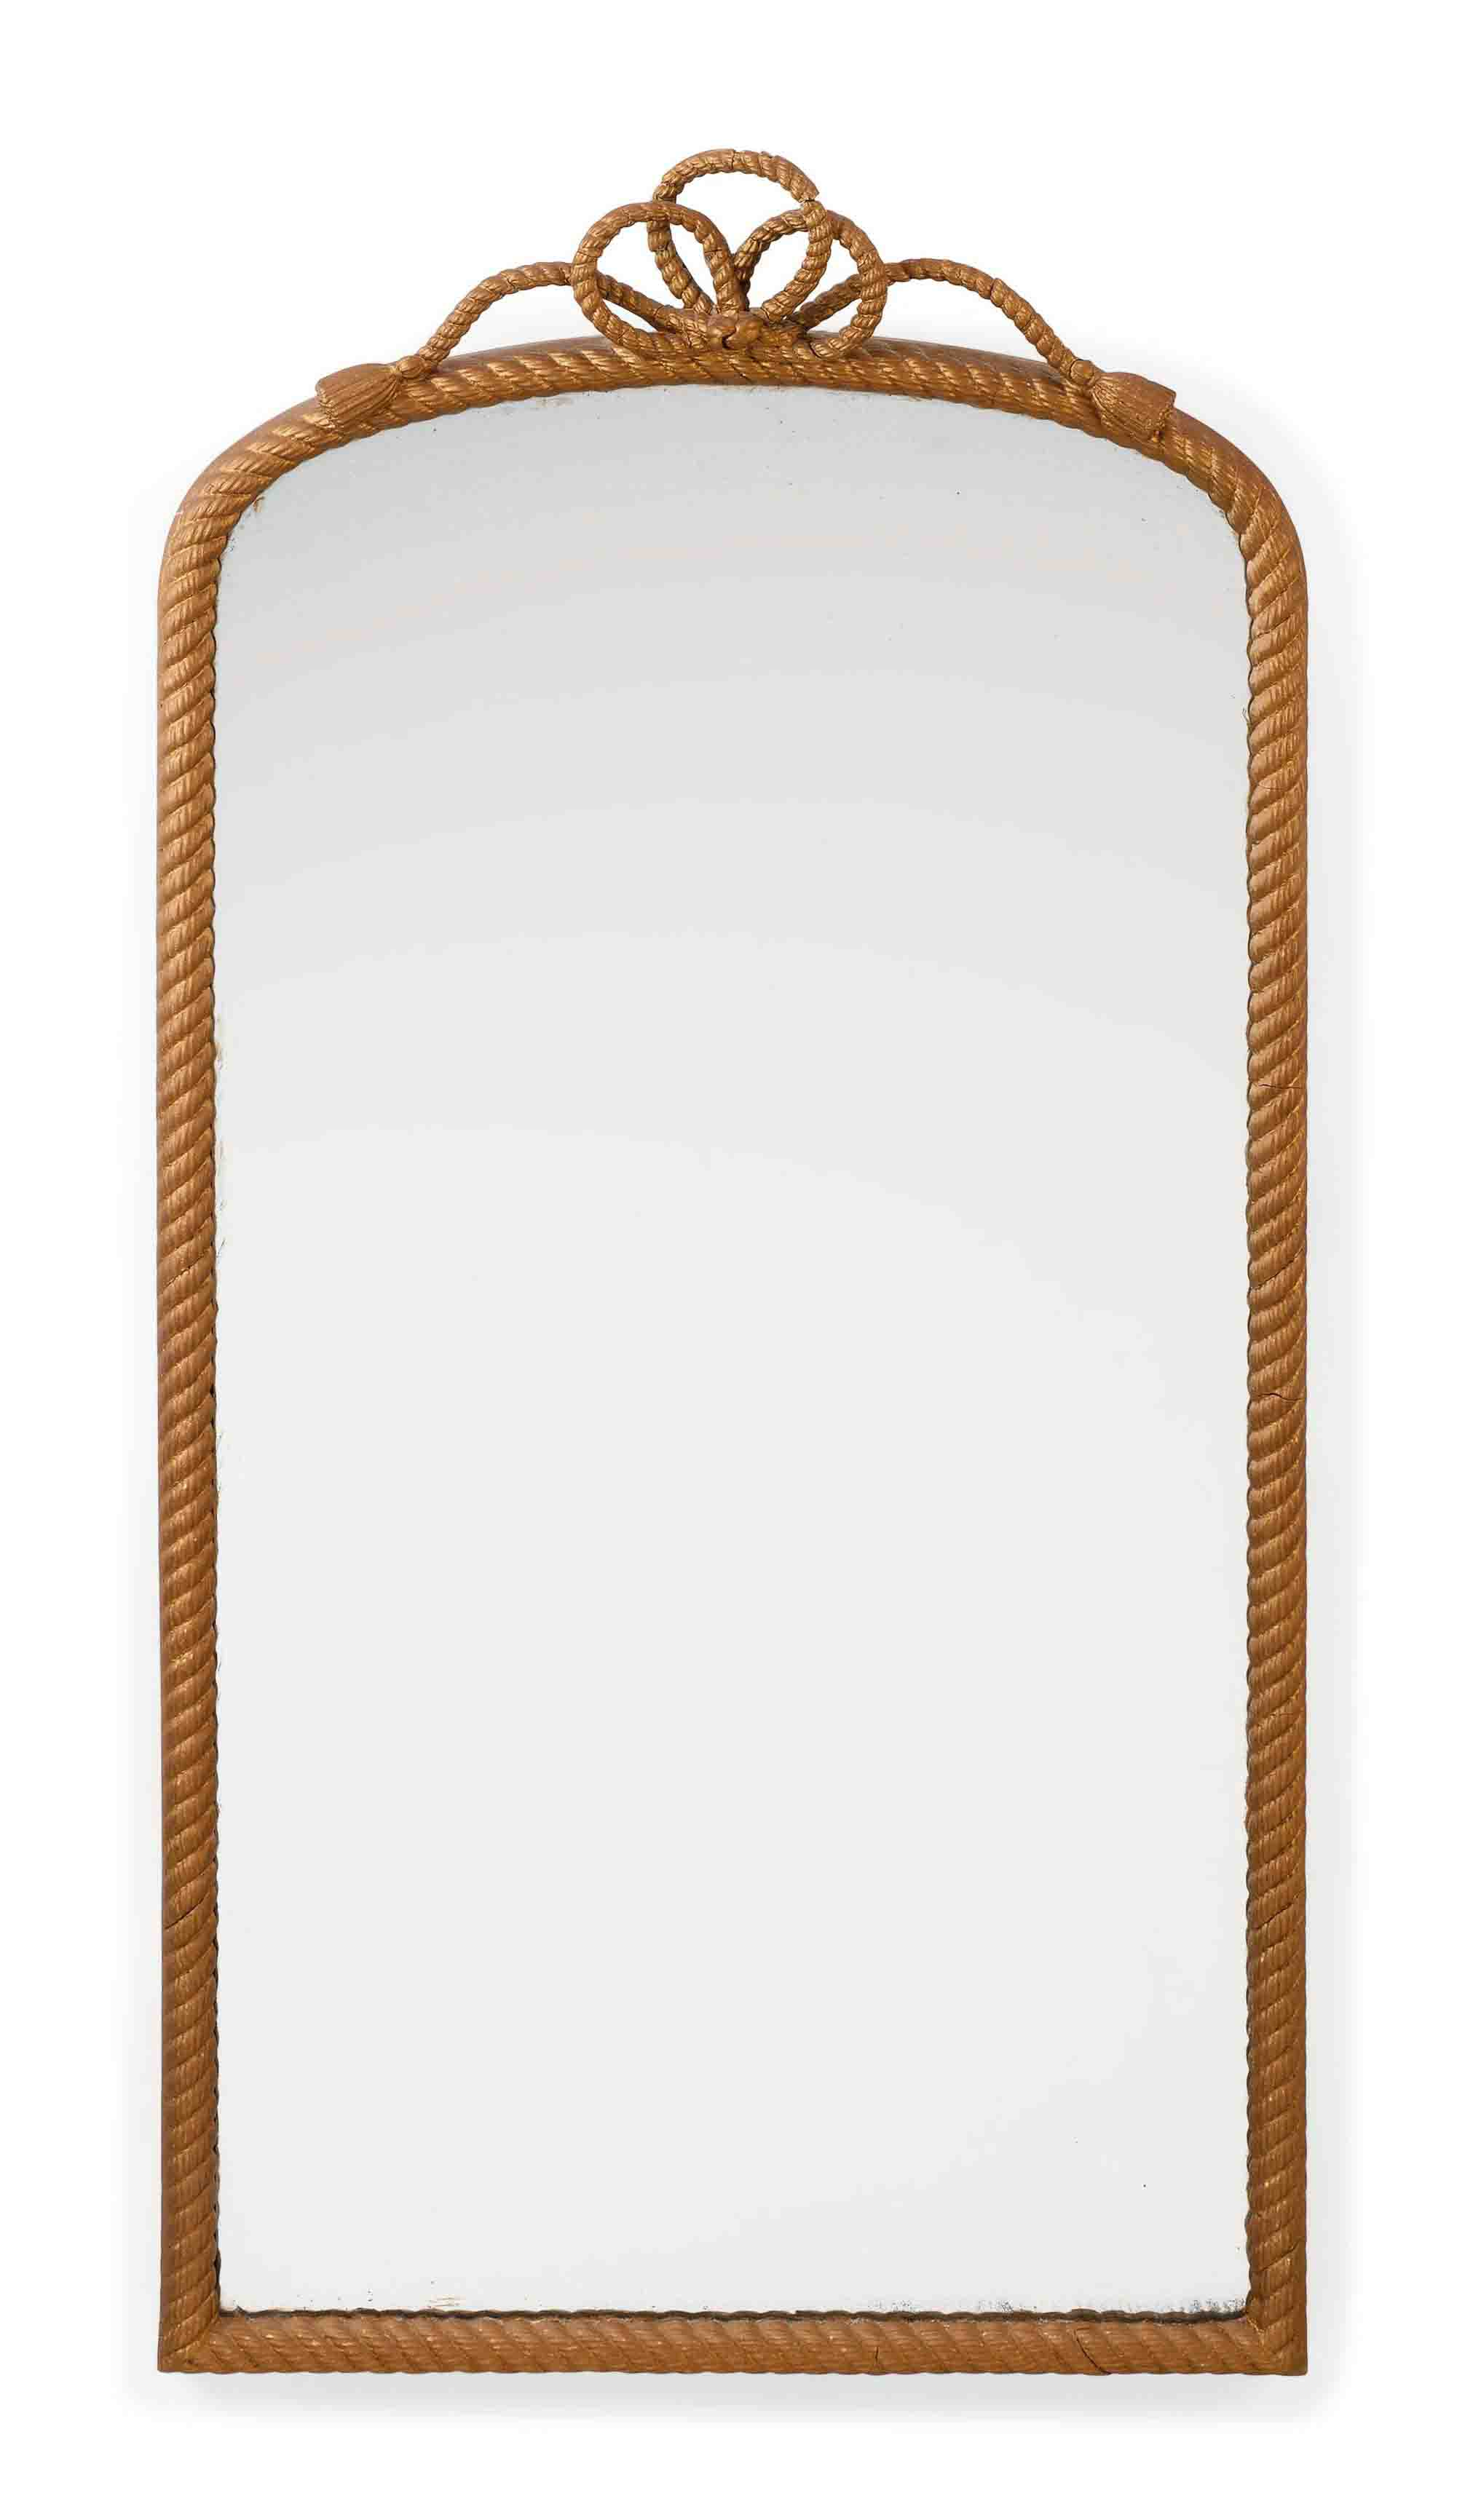 A PAIR OF FRENCH GILT DECORATED CARVED WOOD AND COMPOSITION MIRRORS